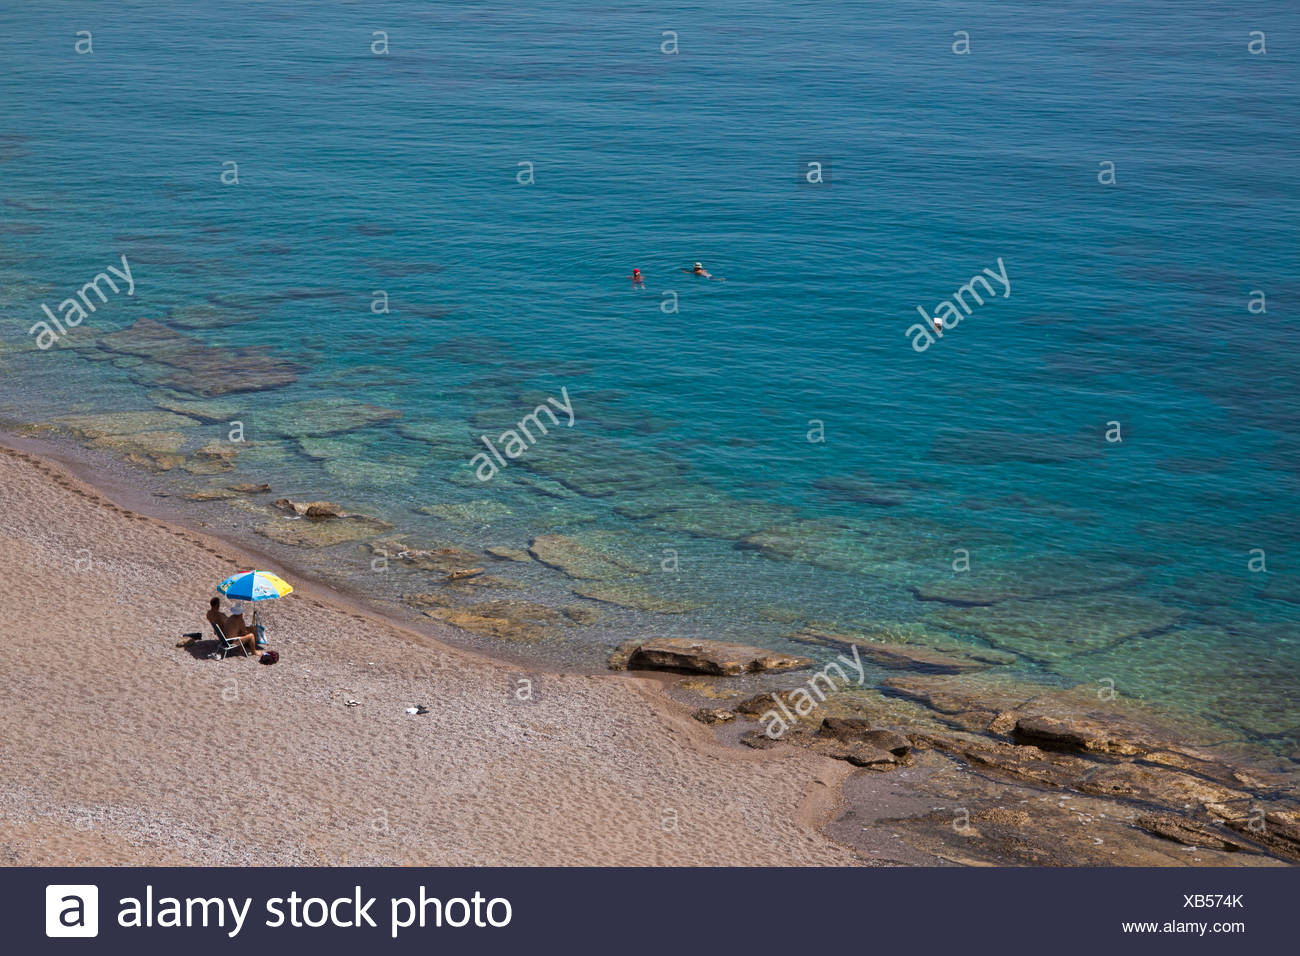 Beach, individual bather with a sunshade, Rhodes Island, Greece, Europe - Stock Image